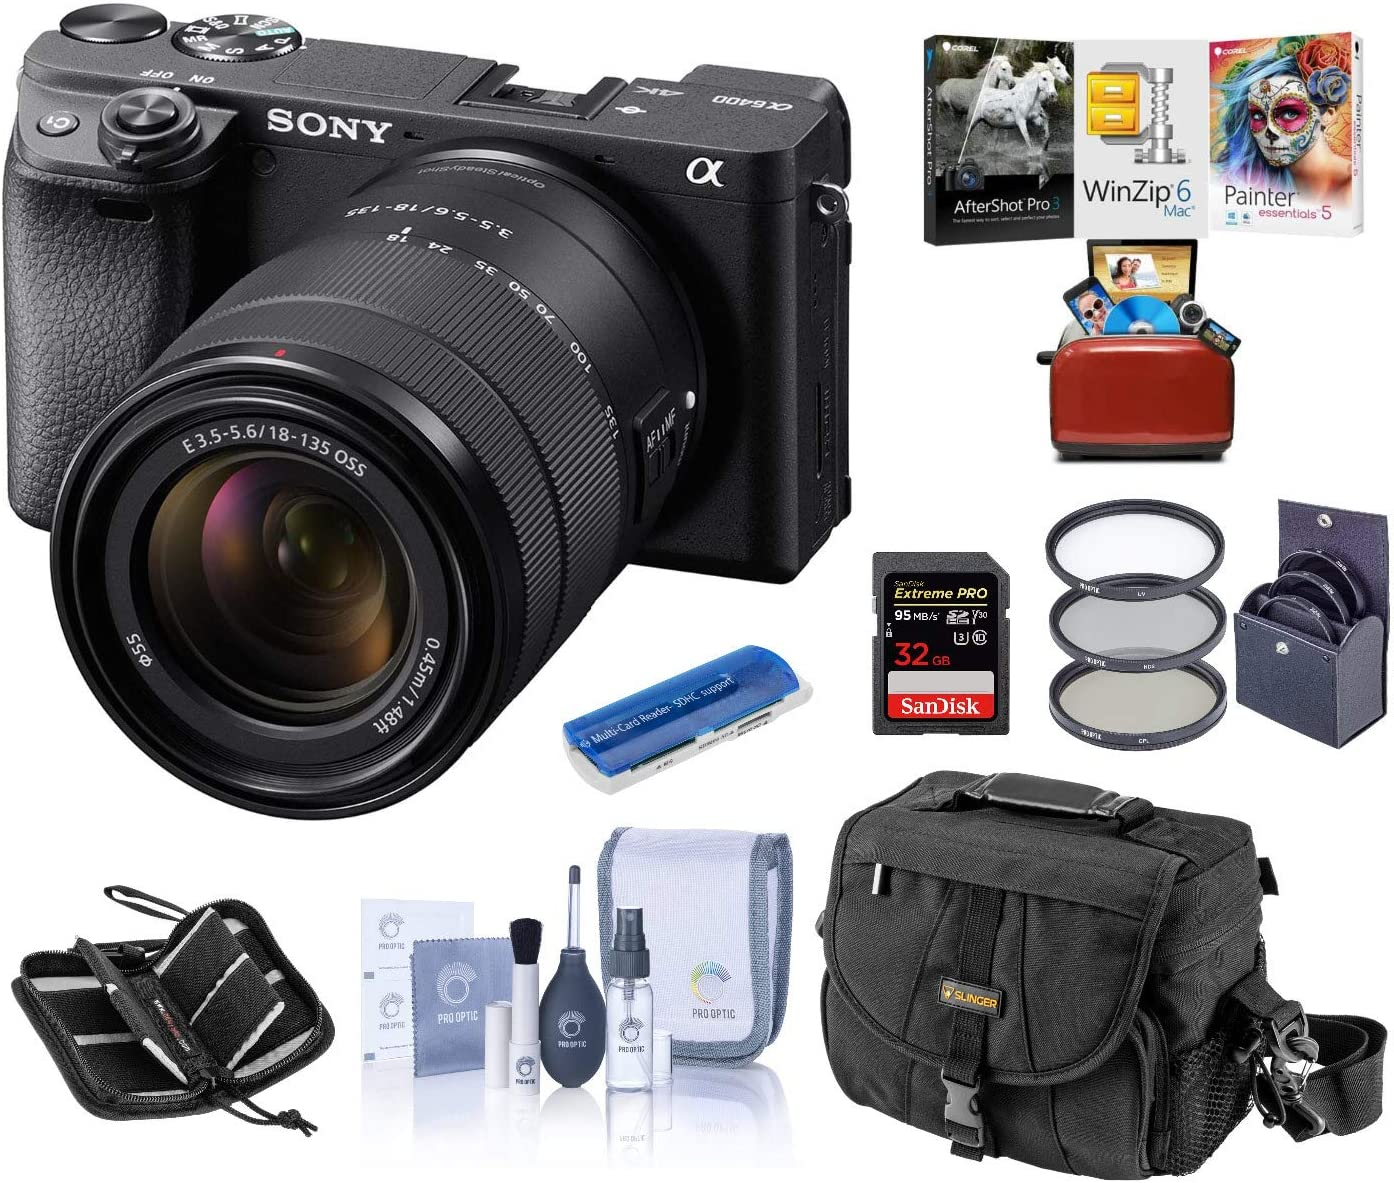 Sony Alpha a6400 Mirrorless Digital Camera with 18-135mm f/3.5-5.6 OSS Lens, Bundle with Camera Bag + Filter Kit + 32GB SD Card + SD Card Case + Corel Mac Software Kit + Cleaning Kit + Card Reader